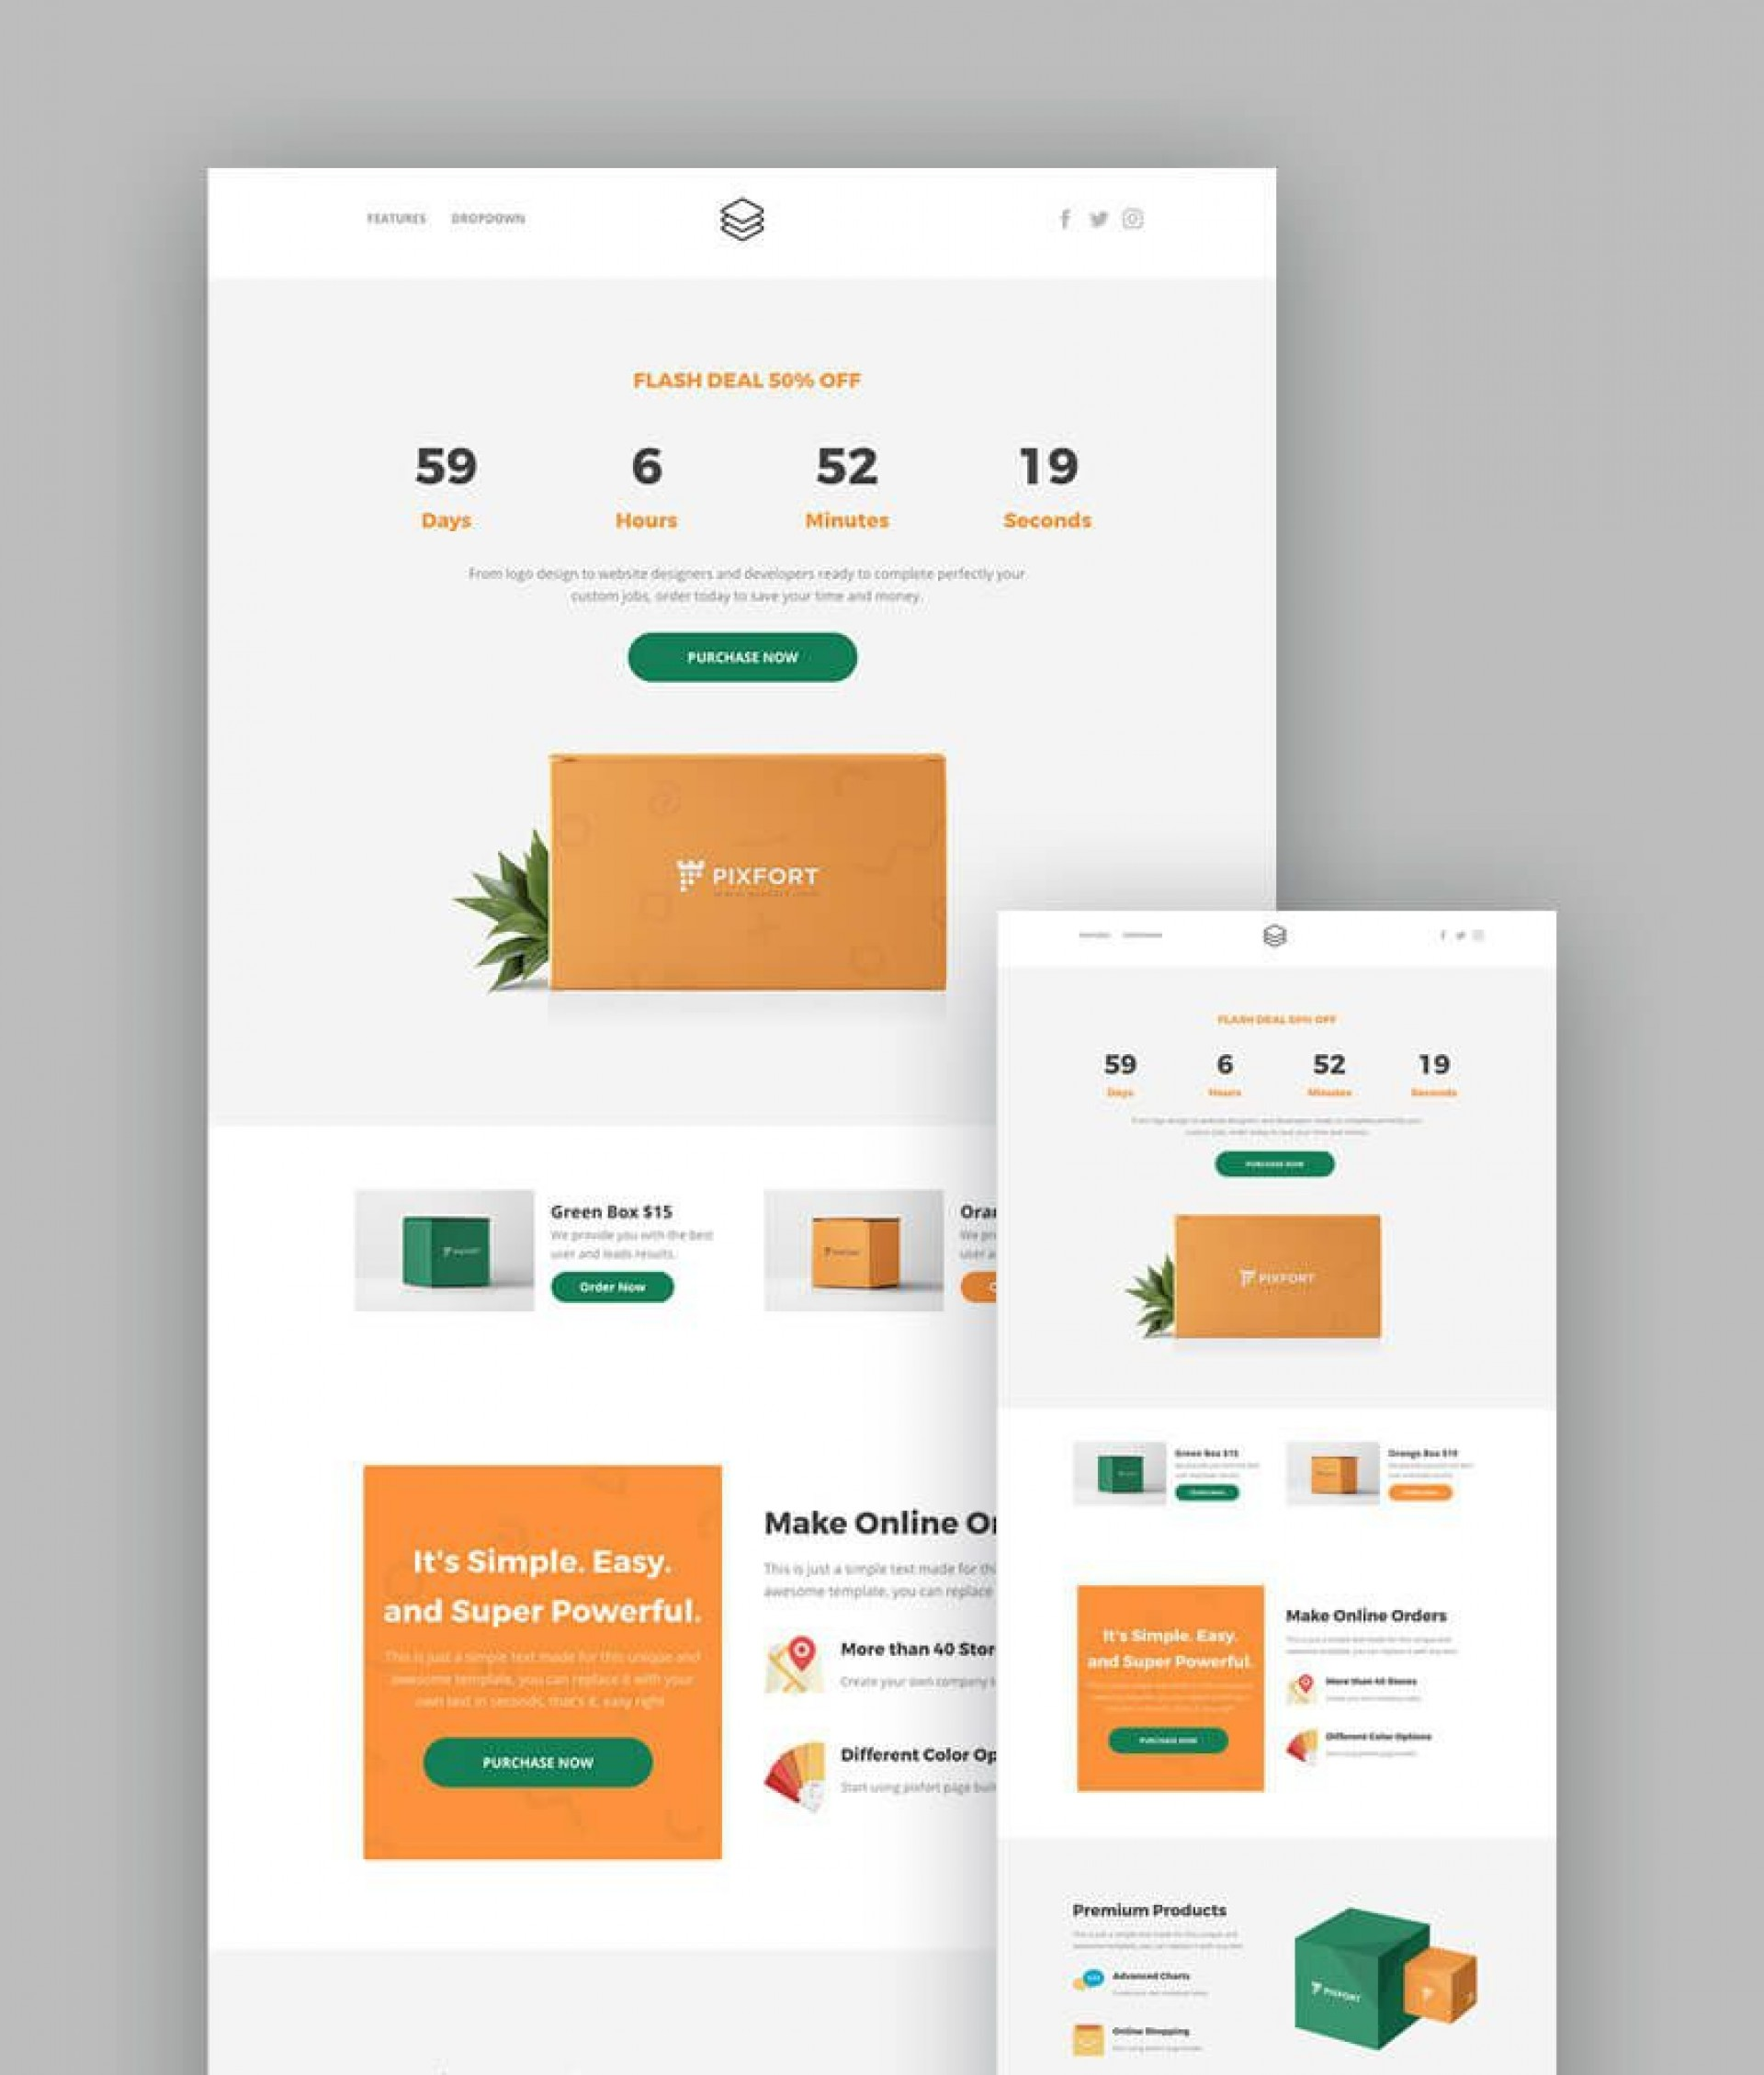 005 Simple Responsive Landing Page Template High Definition  Templates Html5 Free Download Wordpres Html1920